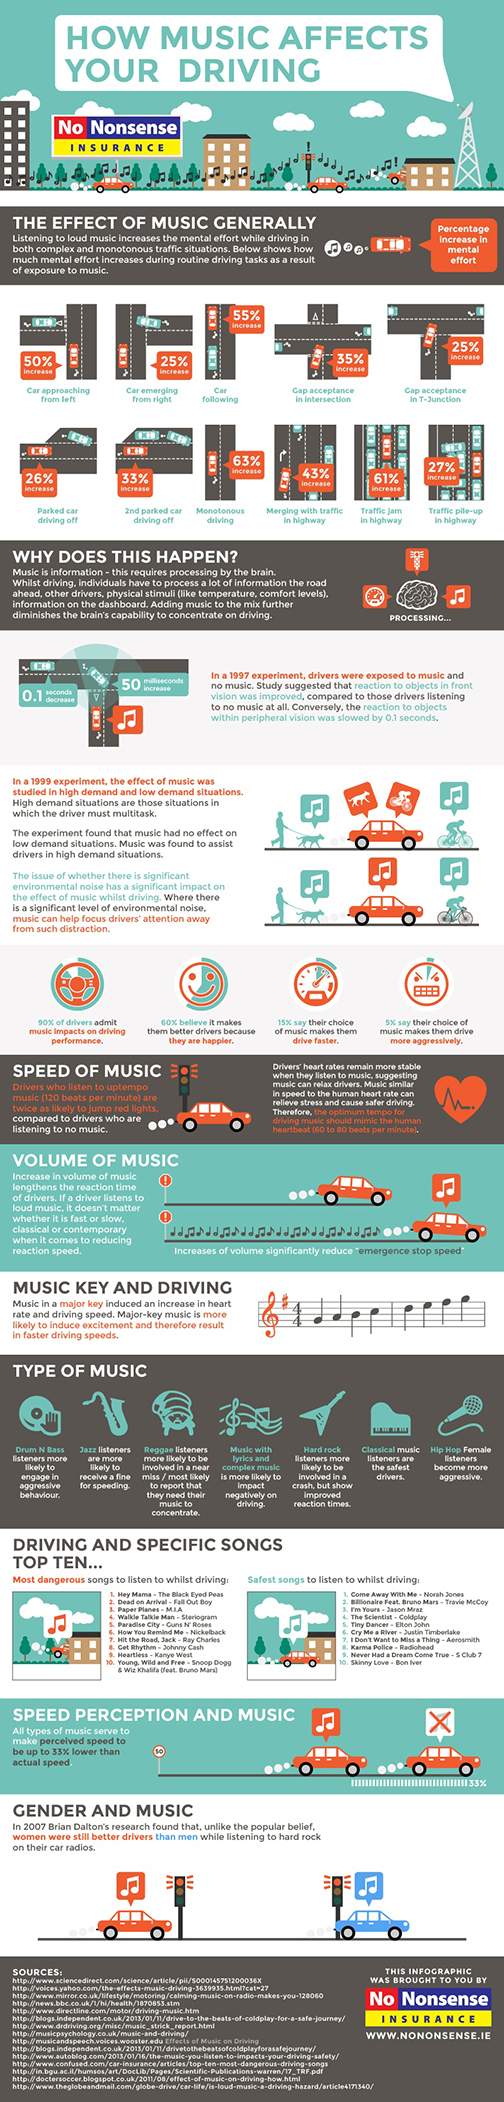 Music Affects Driving